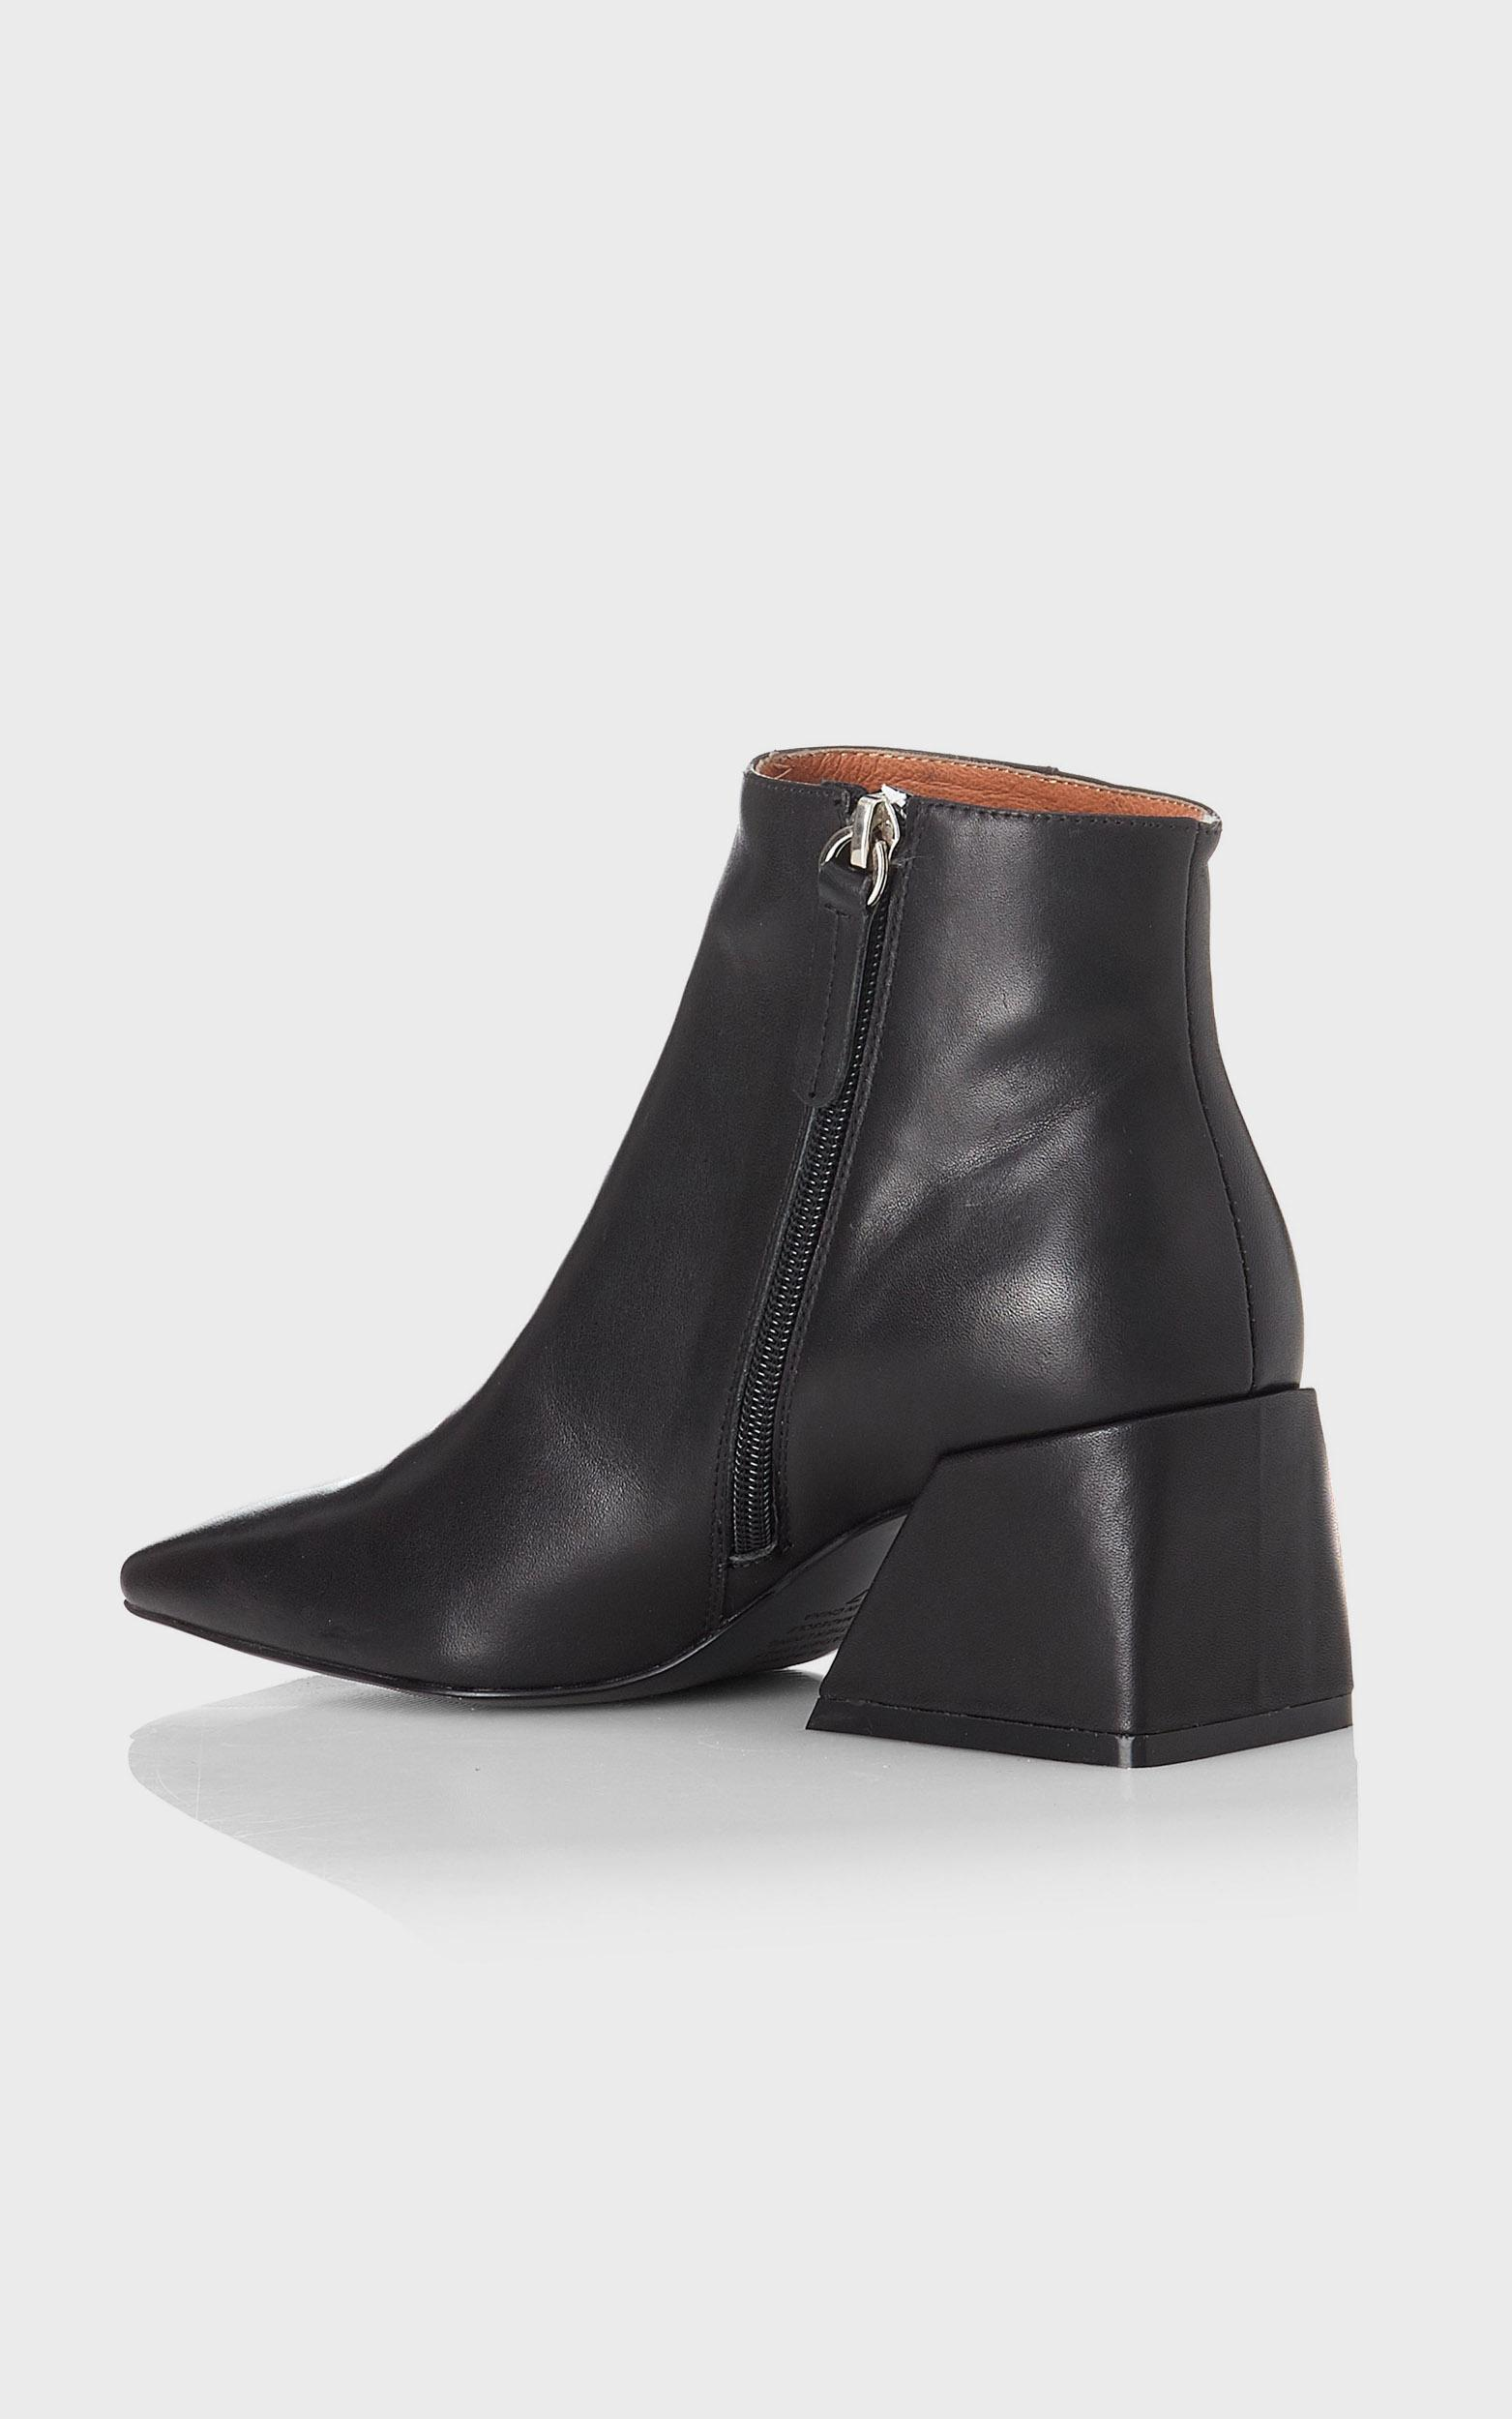 Alias Mae - Dani Boots in Black Burnished - 5.5, Black, hi-res image number null